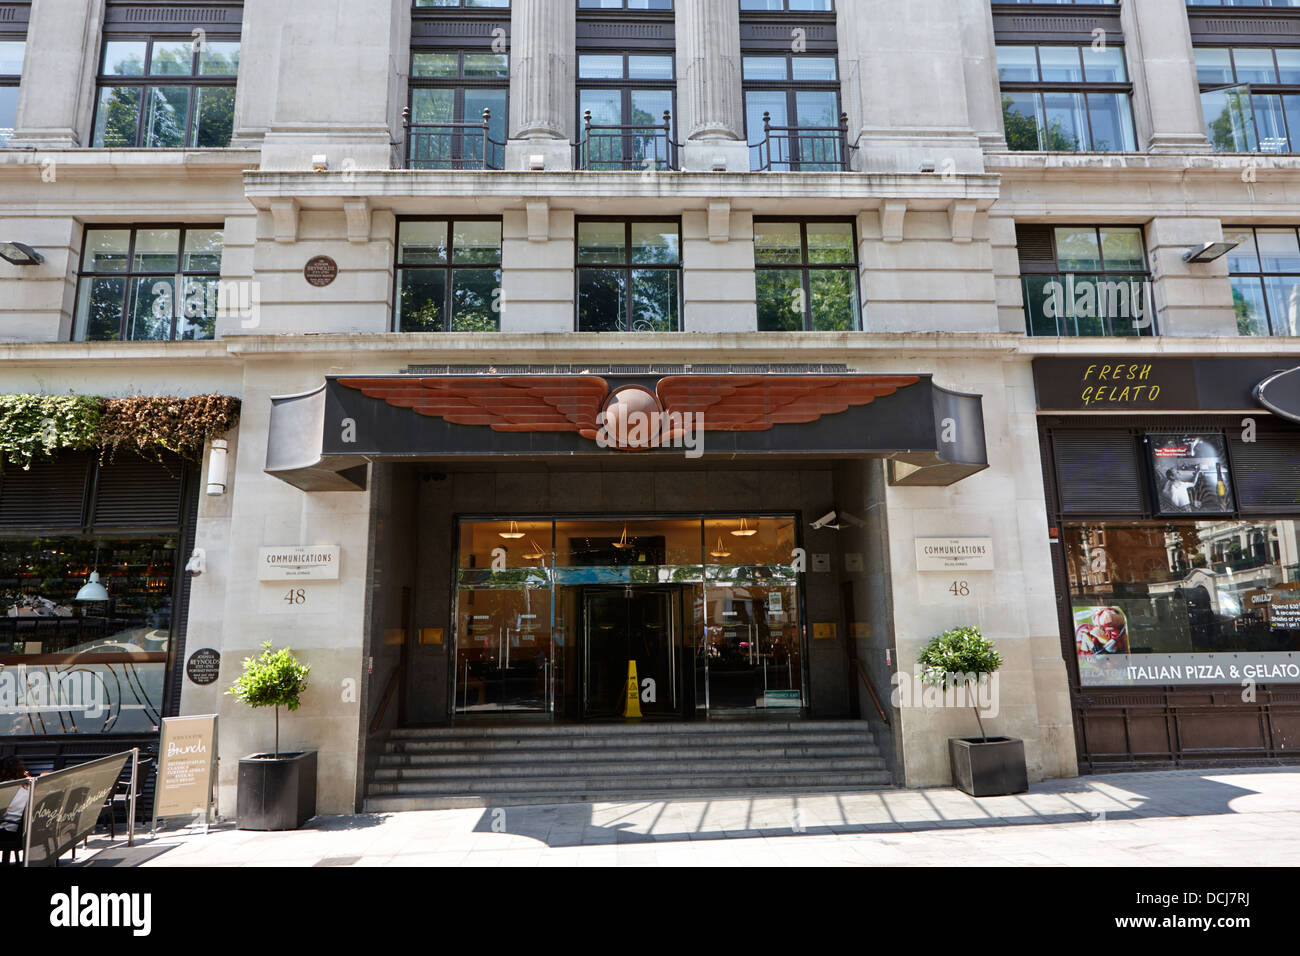 the entrance to the communications building leicester square London England UK - Stock Image